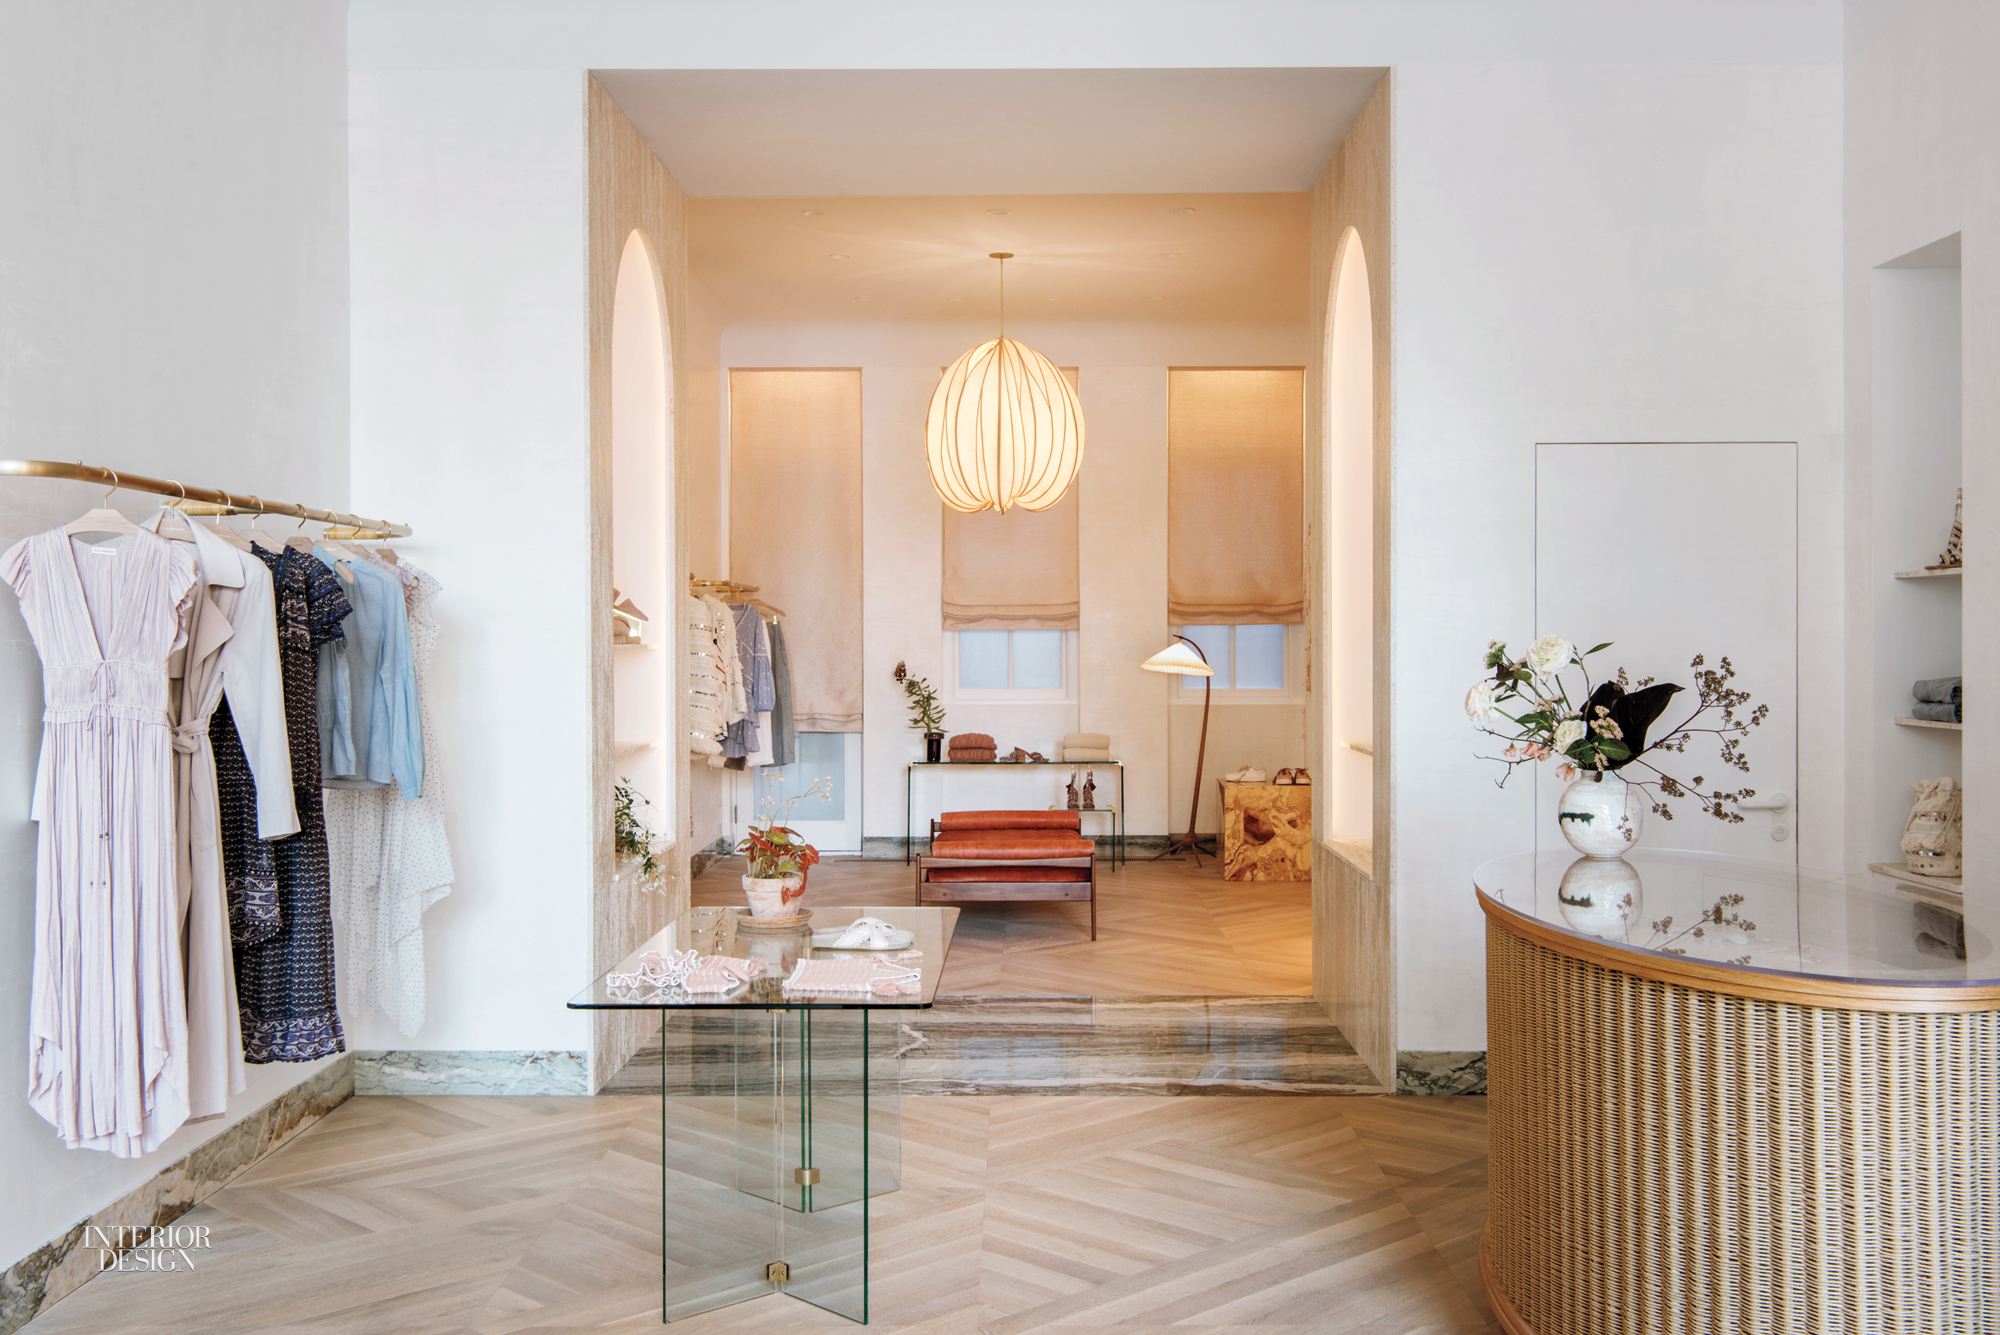 Ulla johnson s nyc boutique takes after a town house - Lloyds architecture planning interiors ...